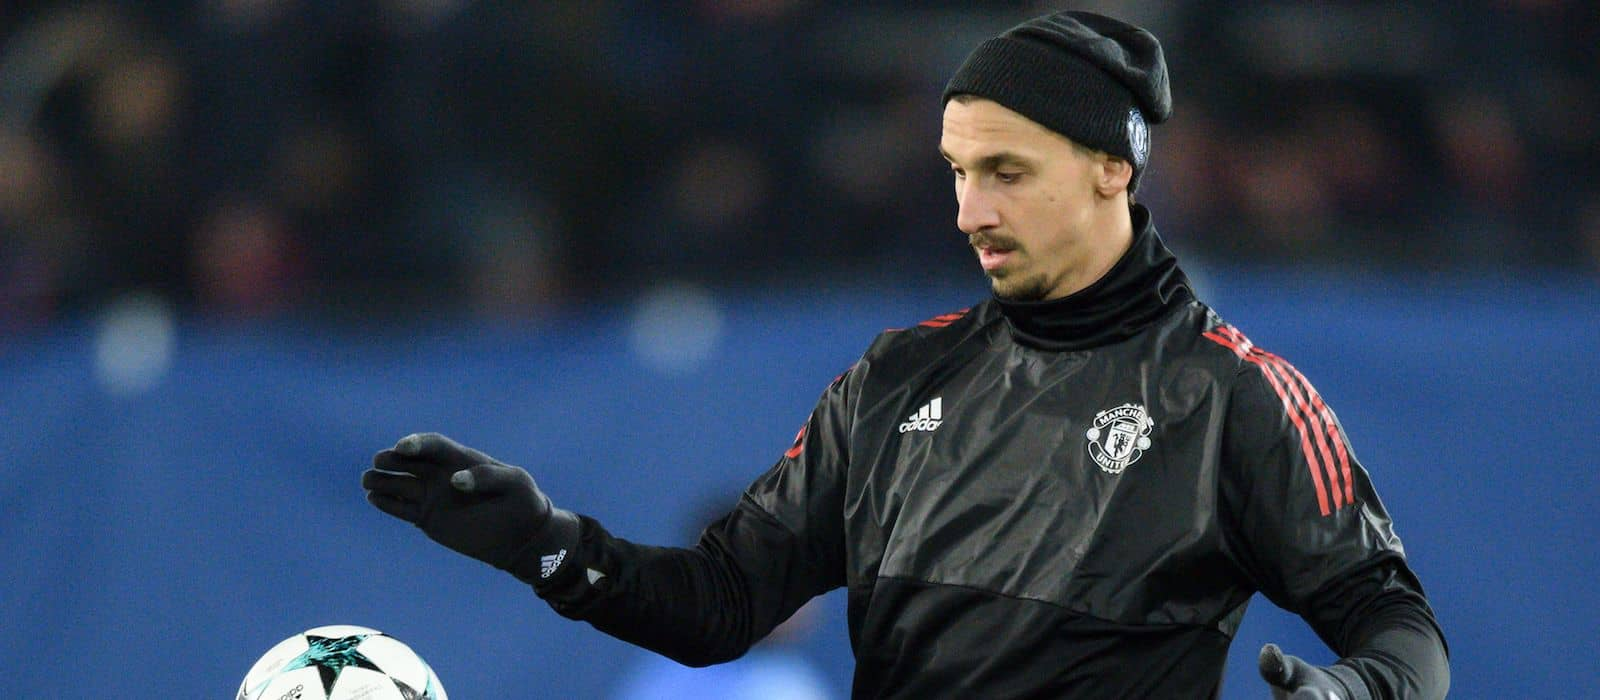 Zlatan Ibrahimovic could leave Manchester United in January with Turkish clubs interested – report